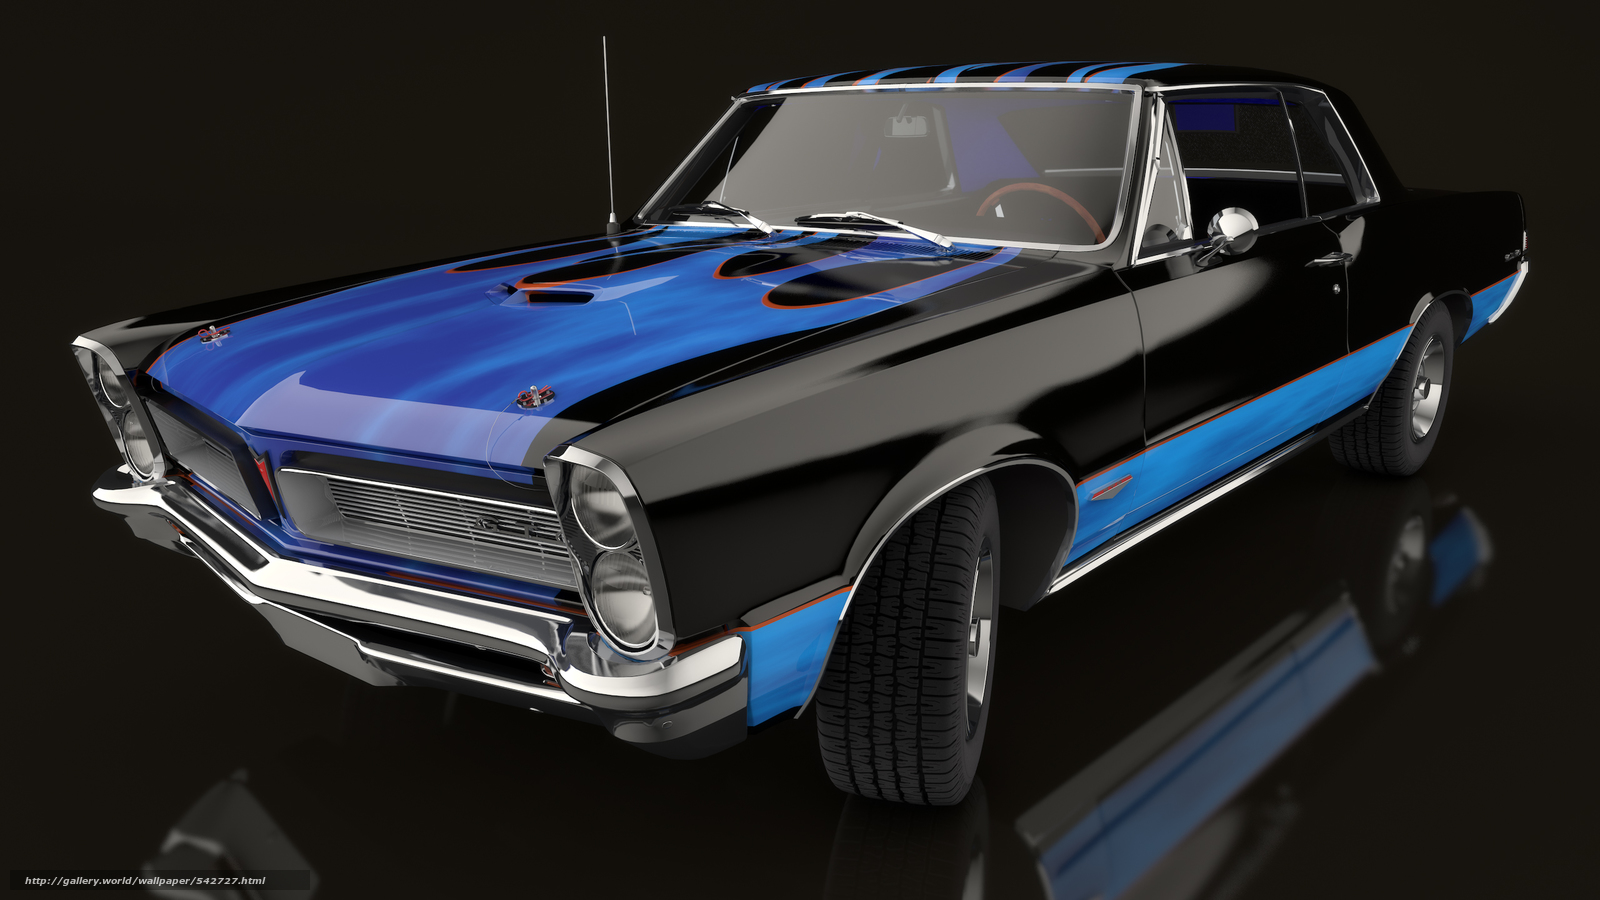 Download wallpaper 1965 pontiac gto machine car free desktop wallpaper in the resolution 2560x1440 picture 542727